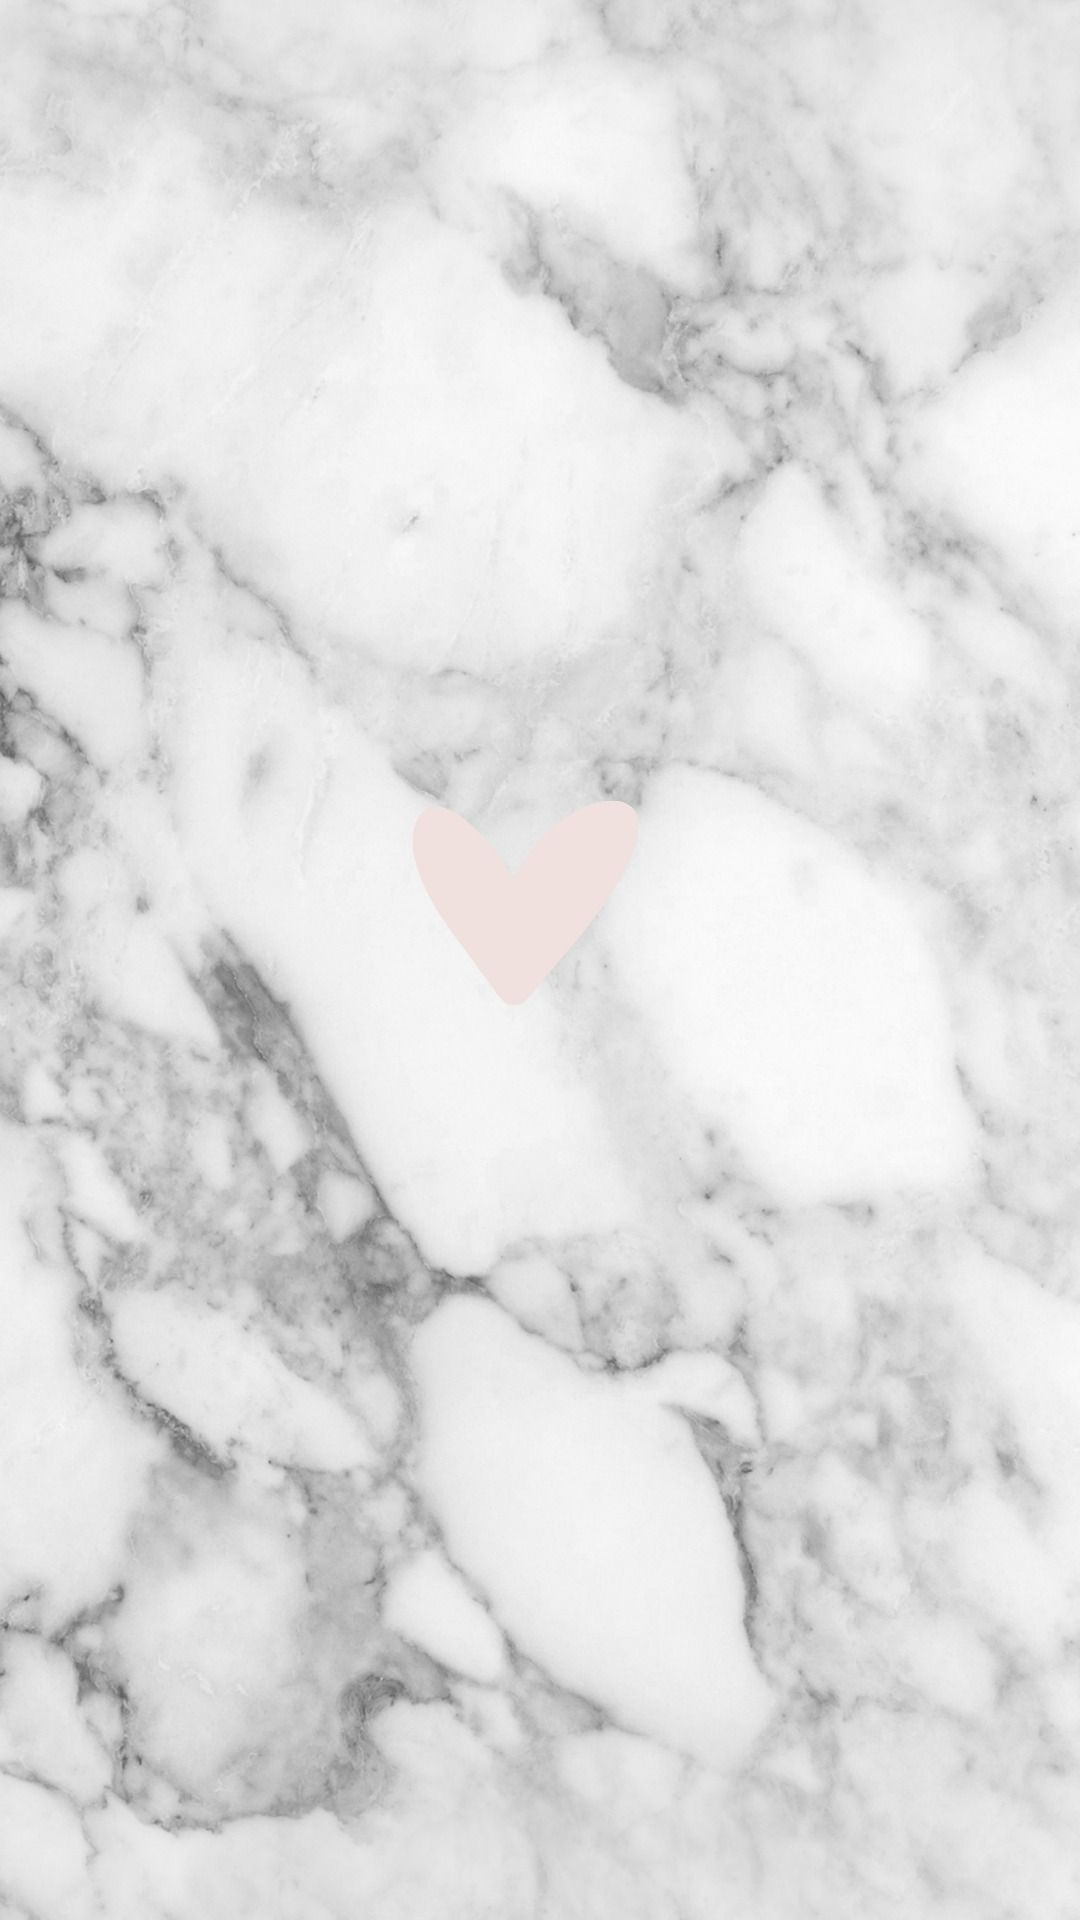 40 Free Iphone Wallpapers Marble Wallpaper Phone Pastel Iphone